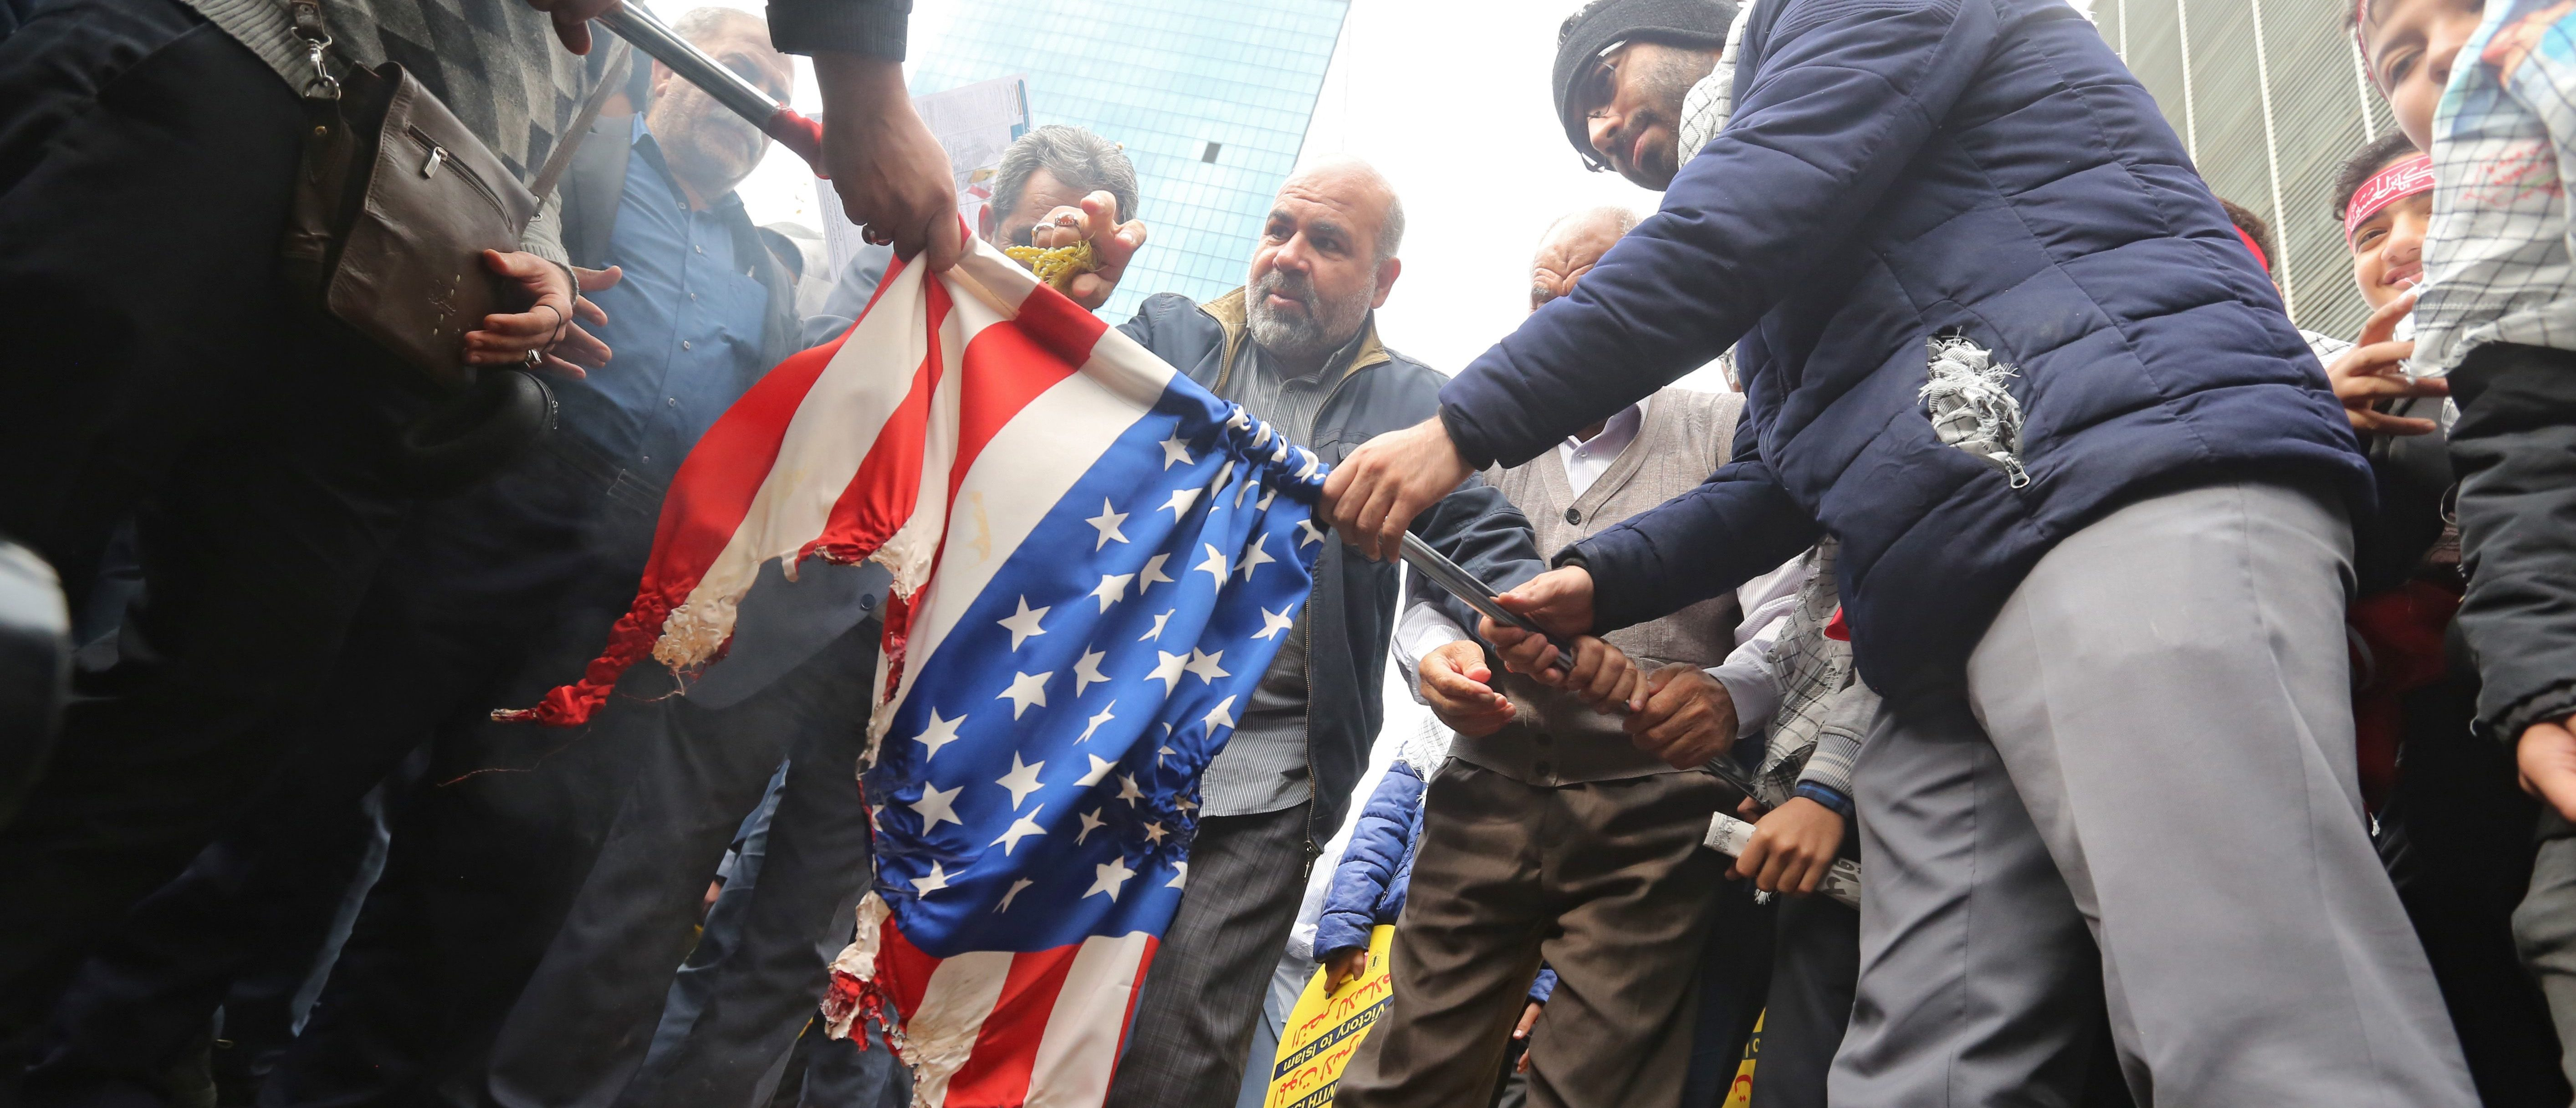 Iranian protesters set a US flag on fire during a rally outside the former US embassy in the Iranian capital Tehran on November 4, 2019, to mark the 40th anniversary of the Iran hostage crisis. (Photo by ATTA KENARE/AFP via Getty Images)